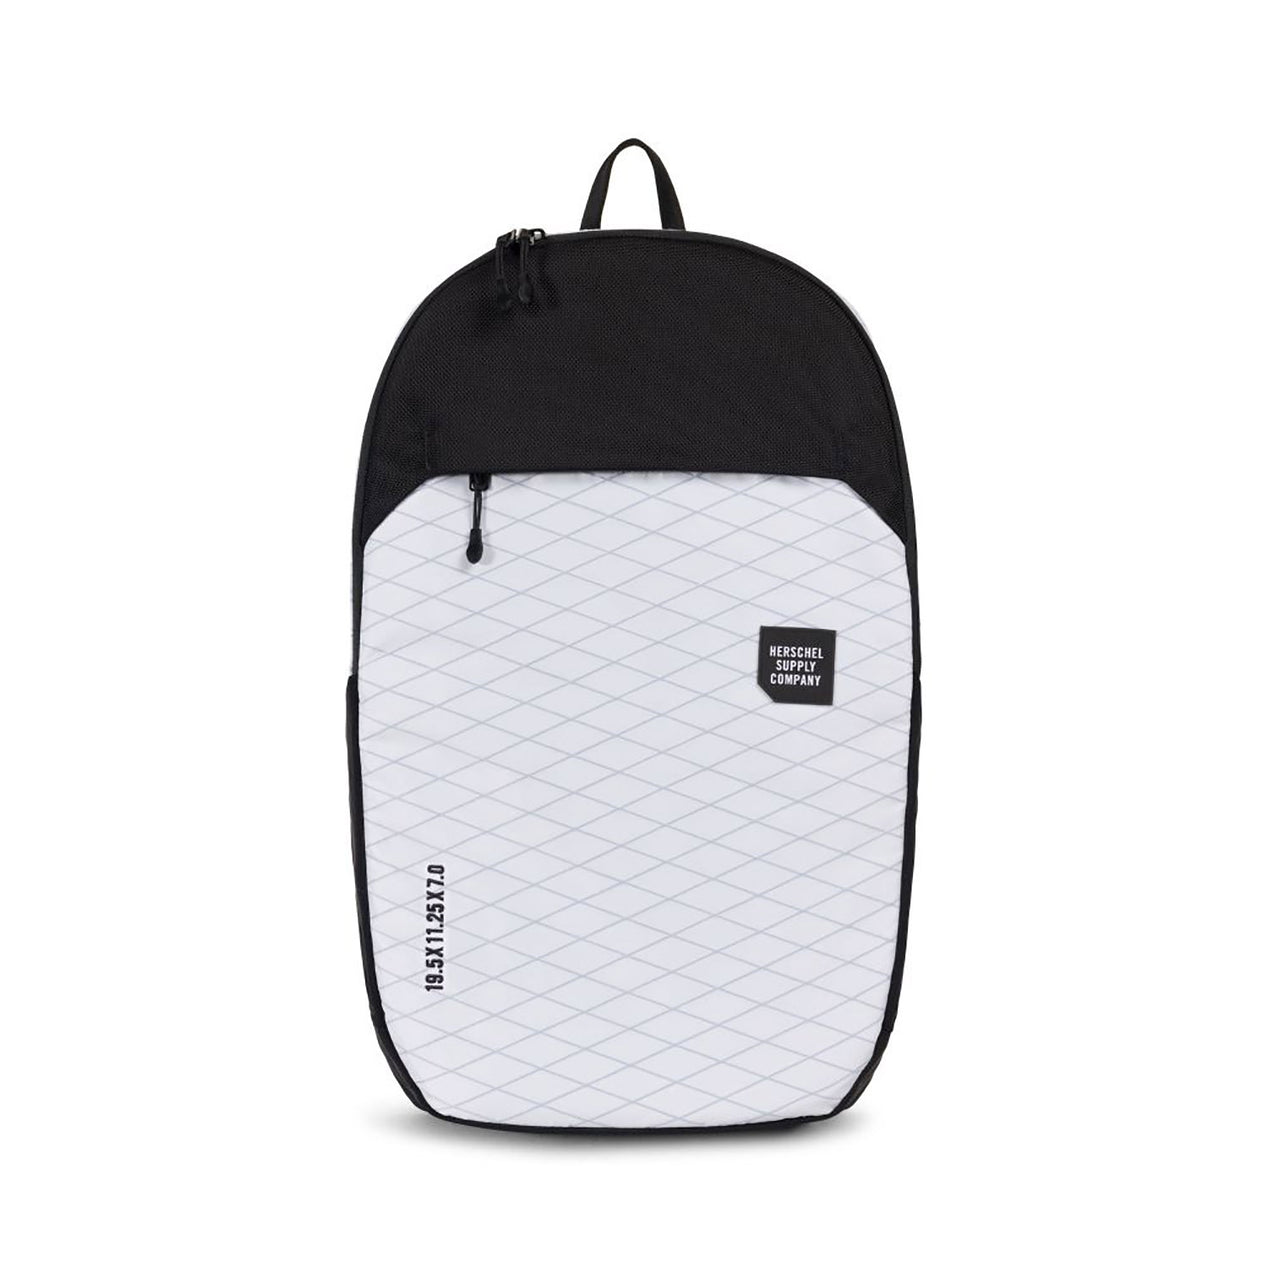 effa0242eff Herschel Supply Co. Mammoth Large - Sailcloth Backpack